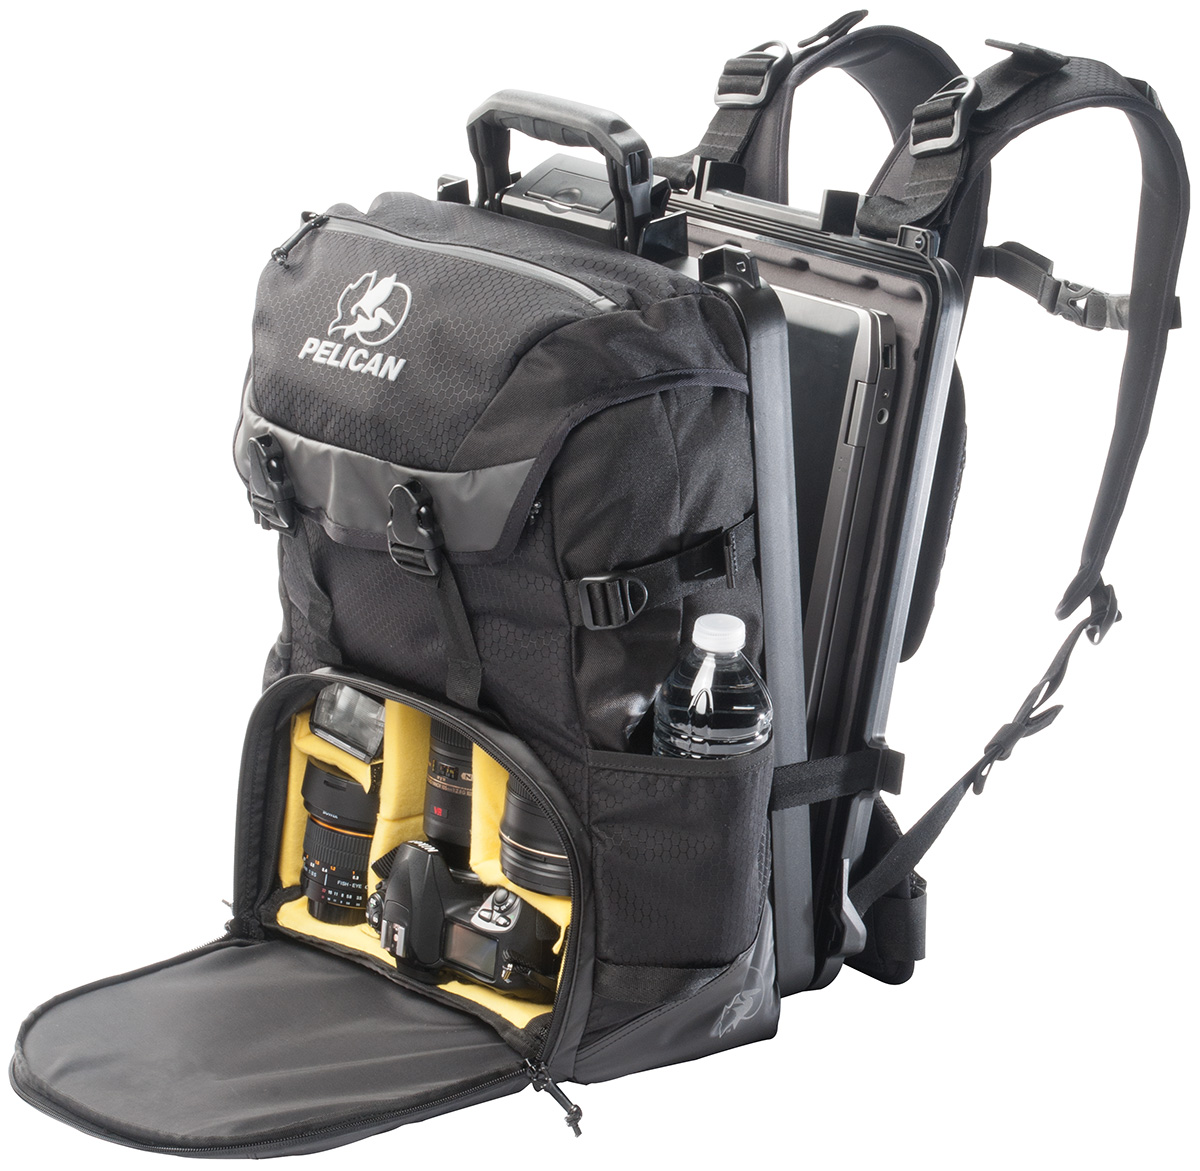 Camera Case and Camera Backpack | Pelican Professional